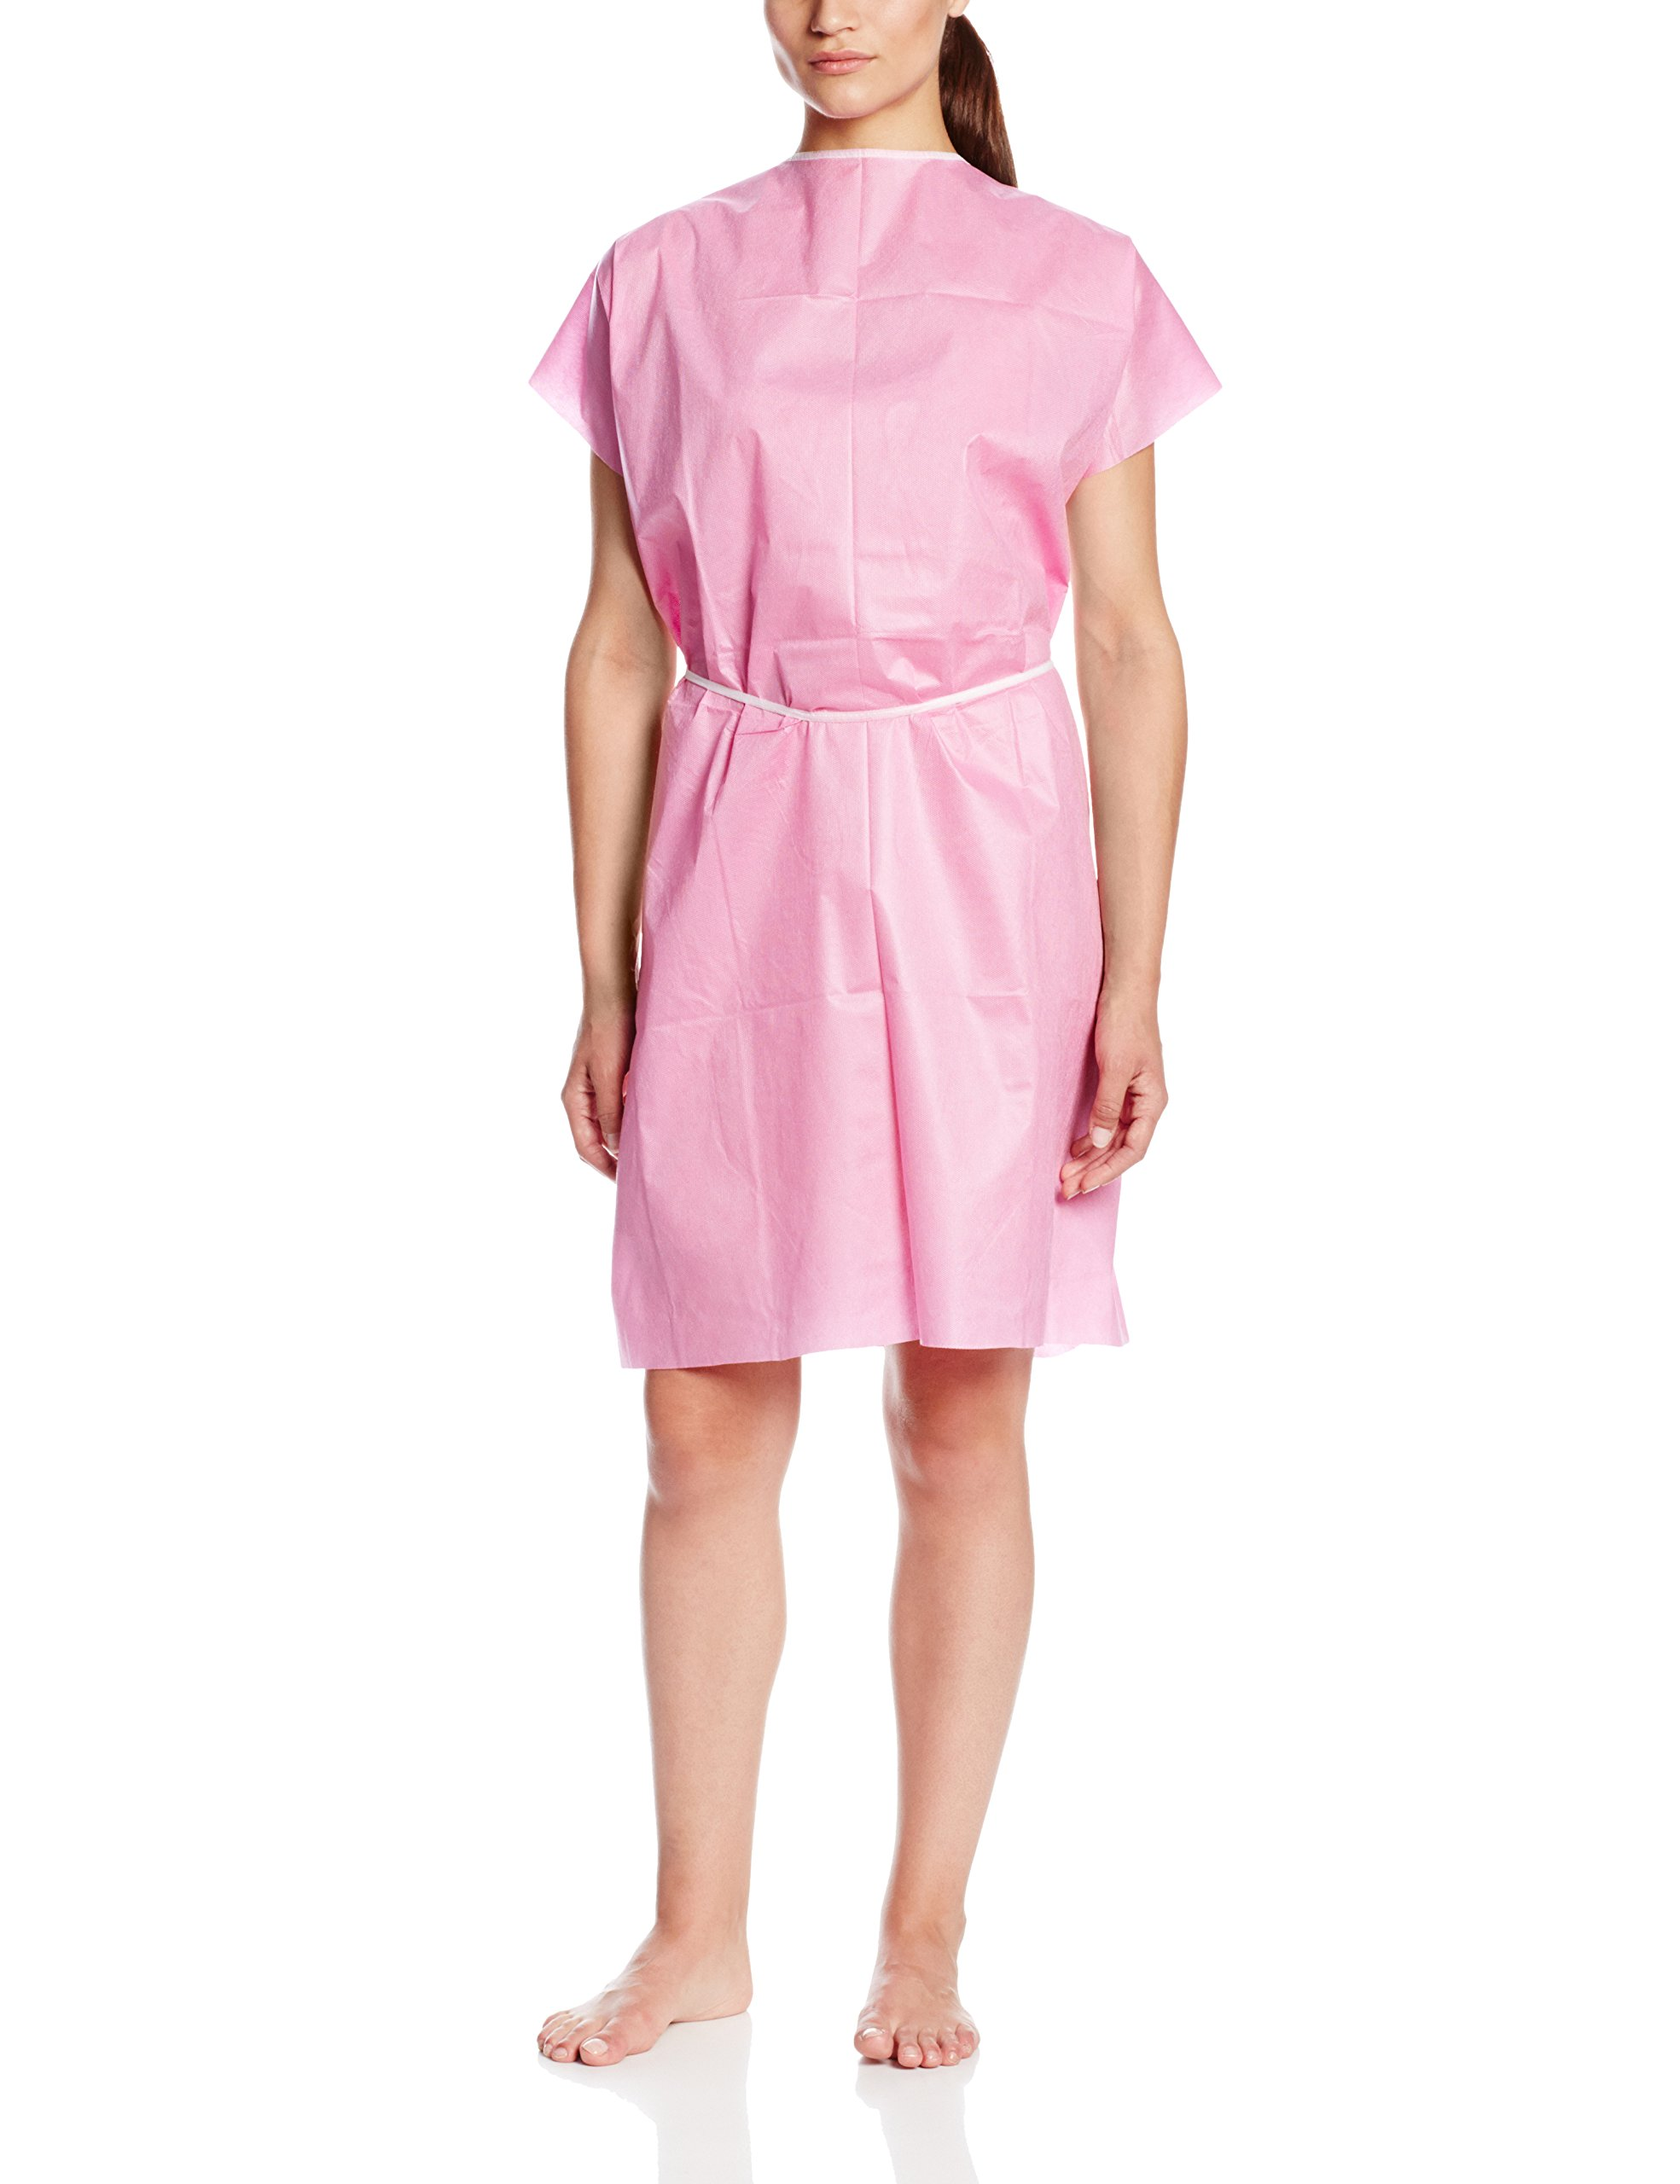 ValuMax 3510RB Disposable Patient Gown, No See Throught, Tears-Resistant, Fluid Resistant, Raspberry, Case of 50, Regular Size.